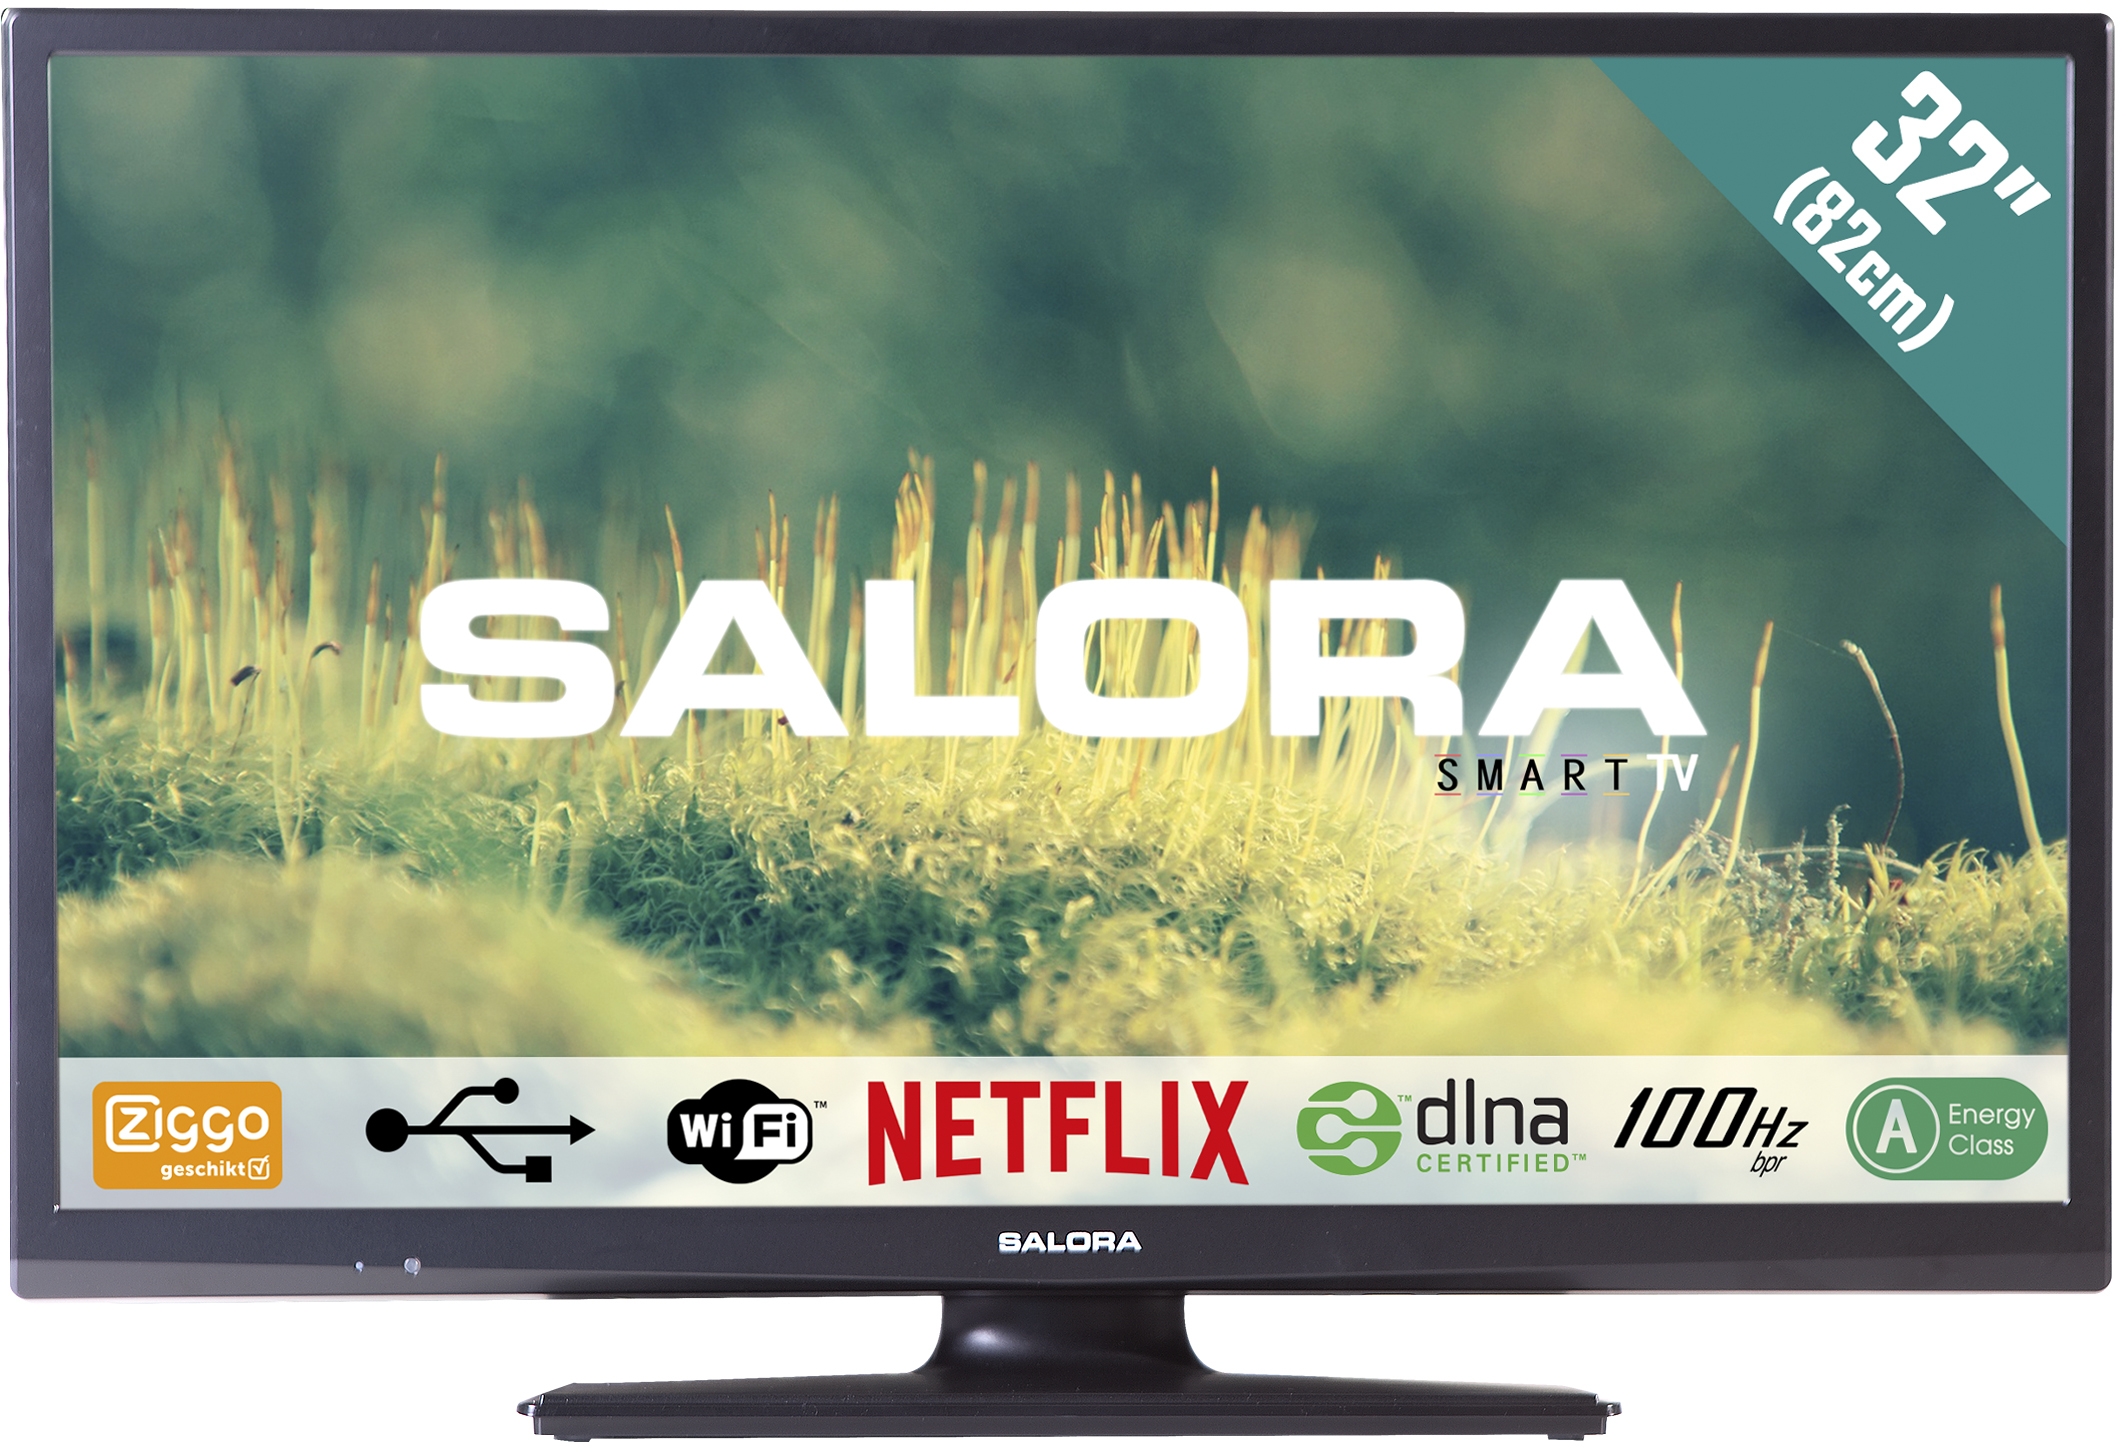 "| Salora smart-LED TV 32EHS2000 SALORA 32EHS2000 32"" (82CM) SMART LED TV met Wifi, Netflix, 100Hz BPR en USB mediaspeler Met de 32EHS2000 haalt u een compleet uitgeruste 32"" (82CM) internet televisie in huis. Dit Ziggo gecertificeerde CI+ model"